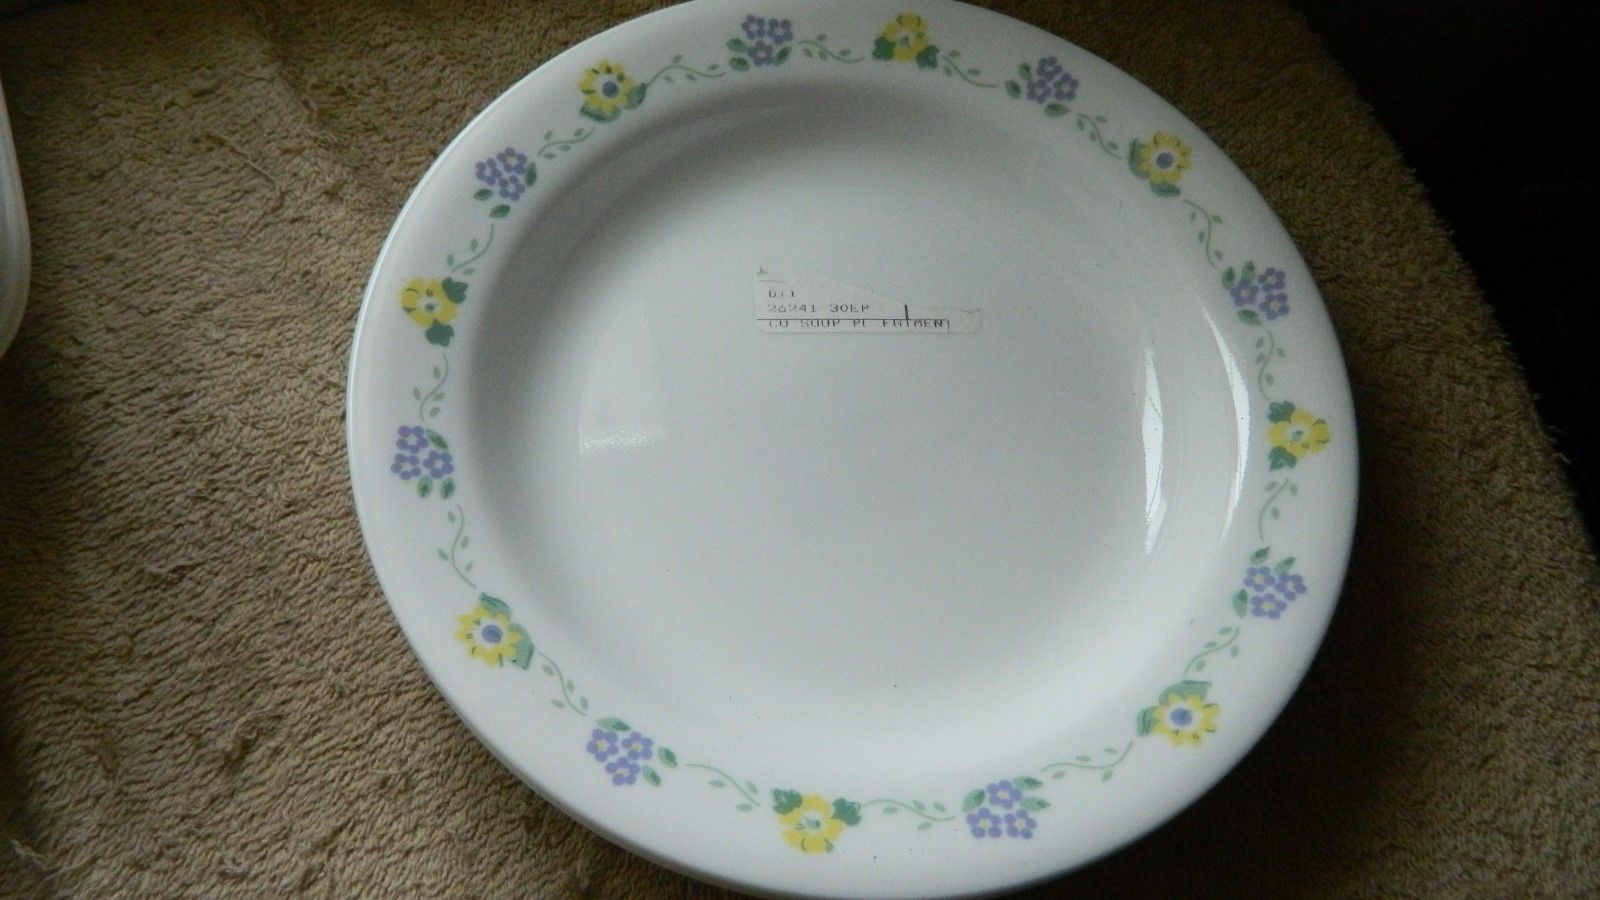 Primary image for CORELLE FORGET ME NOT FLAT RIMMED SOUP BOWLS / PLATES X 4 8.5 INCH BRAND NEW!